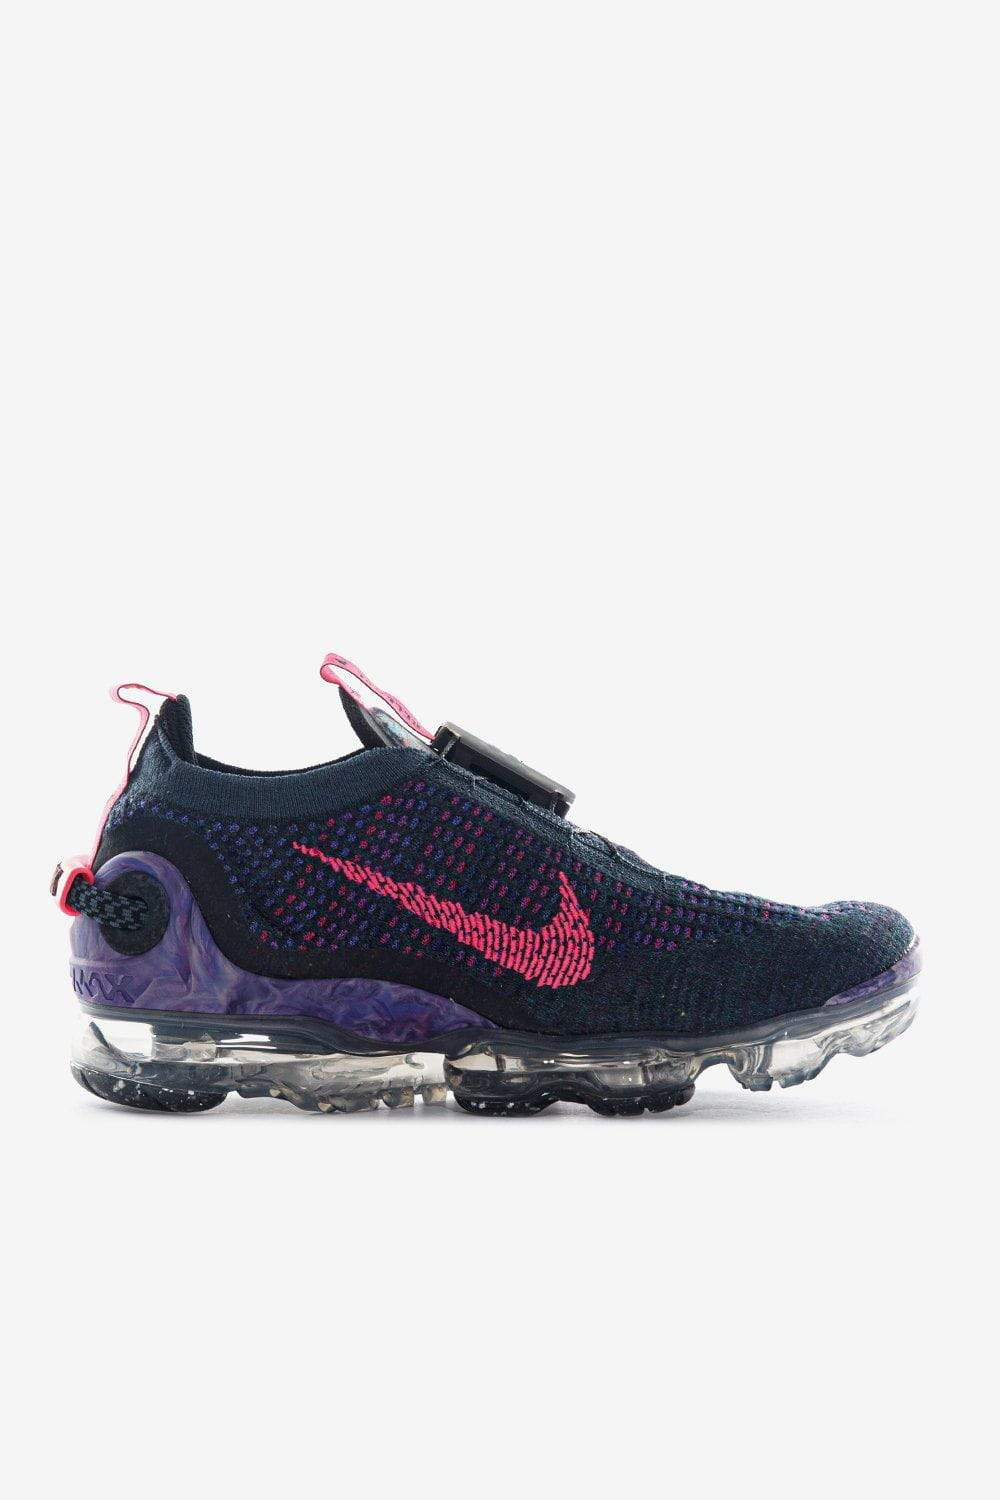 Nike Footwear Air Vapormax 2020 Flyknit WMNS 'Dark Razon'